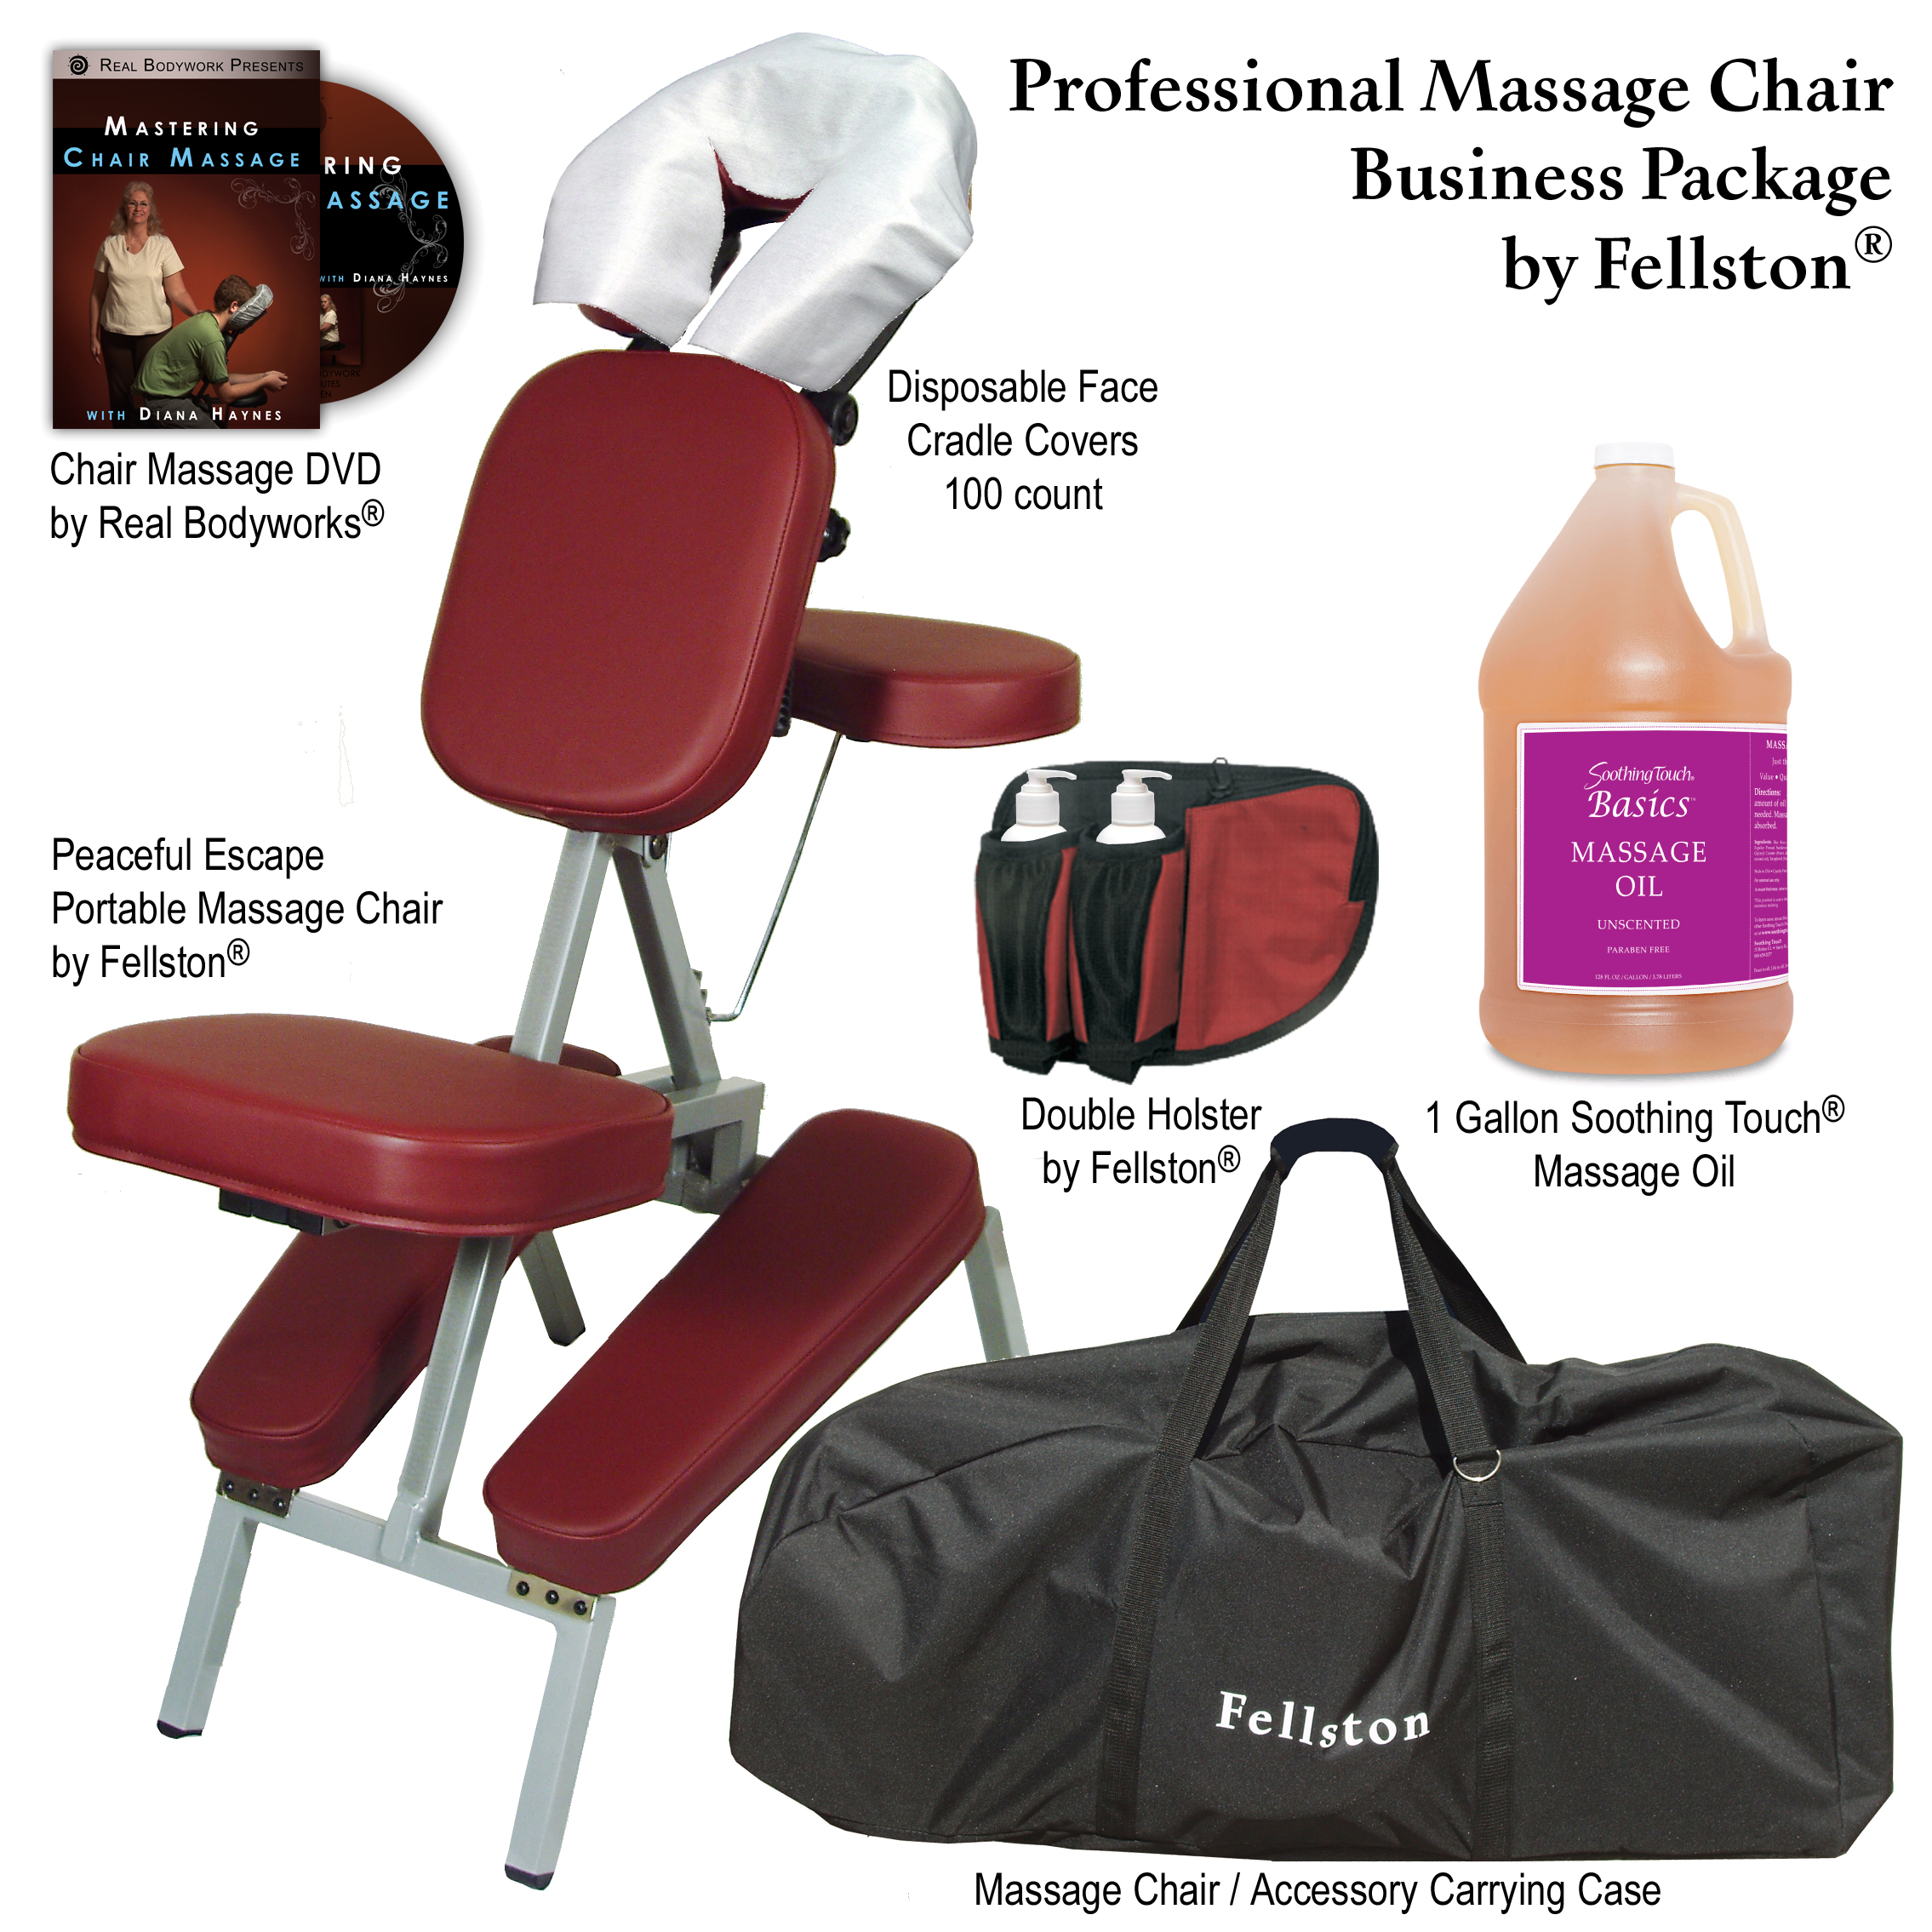 chair massage accessories sleeper canada professional business package products directory